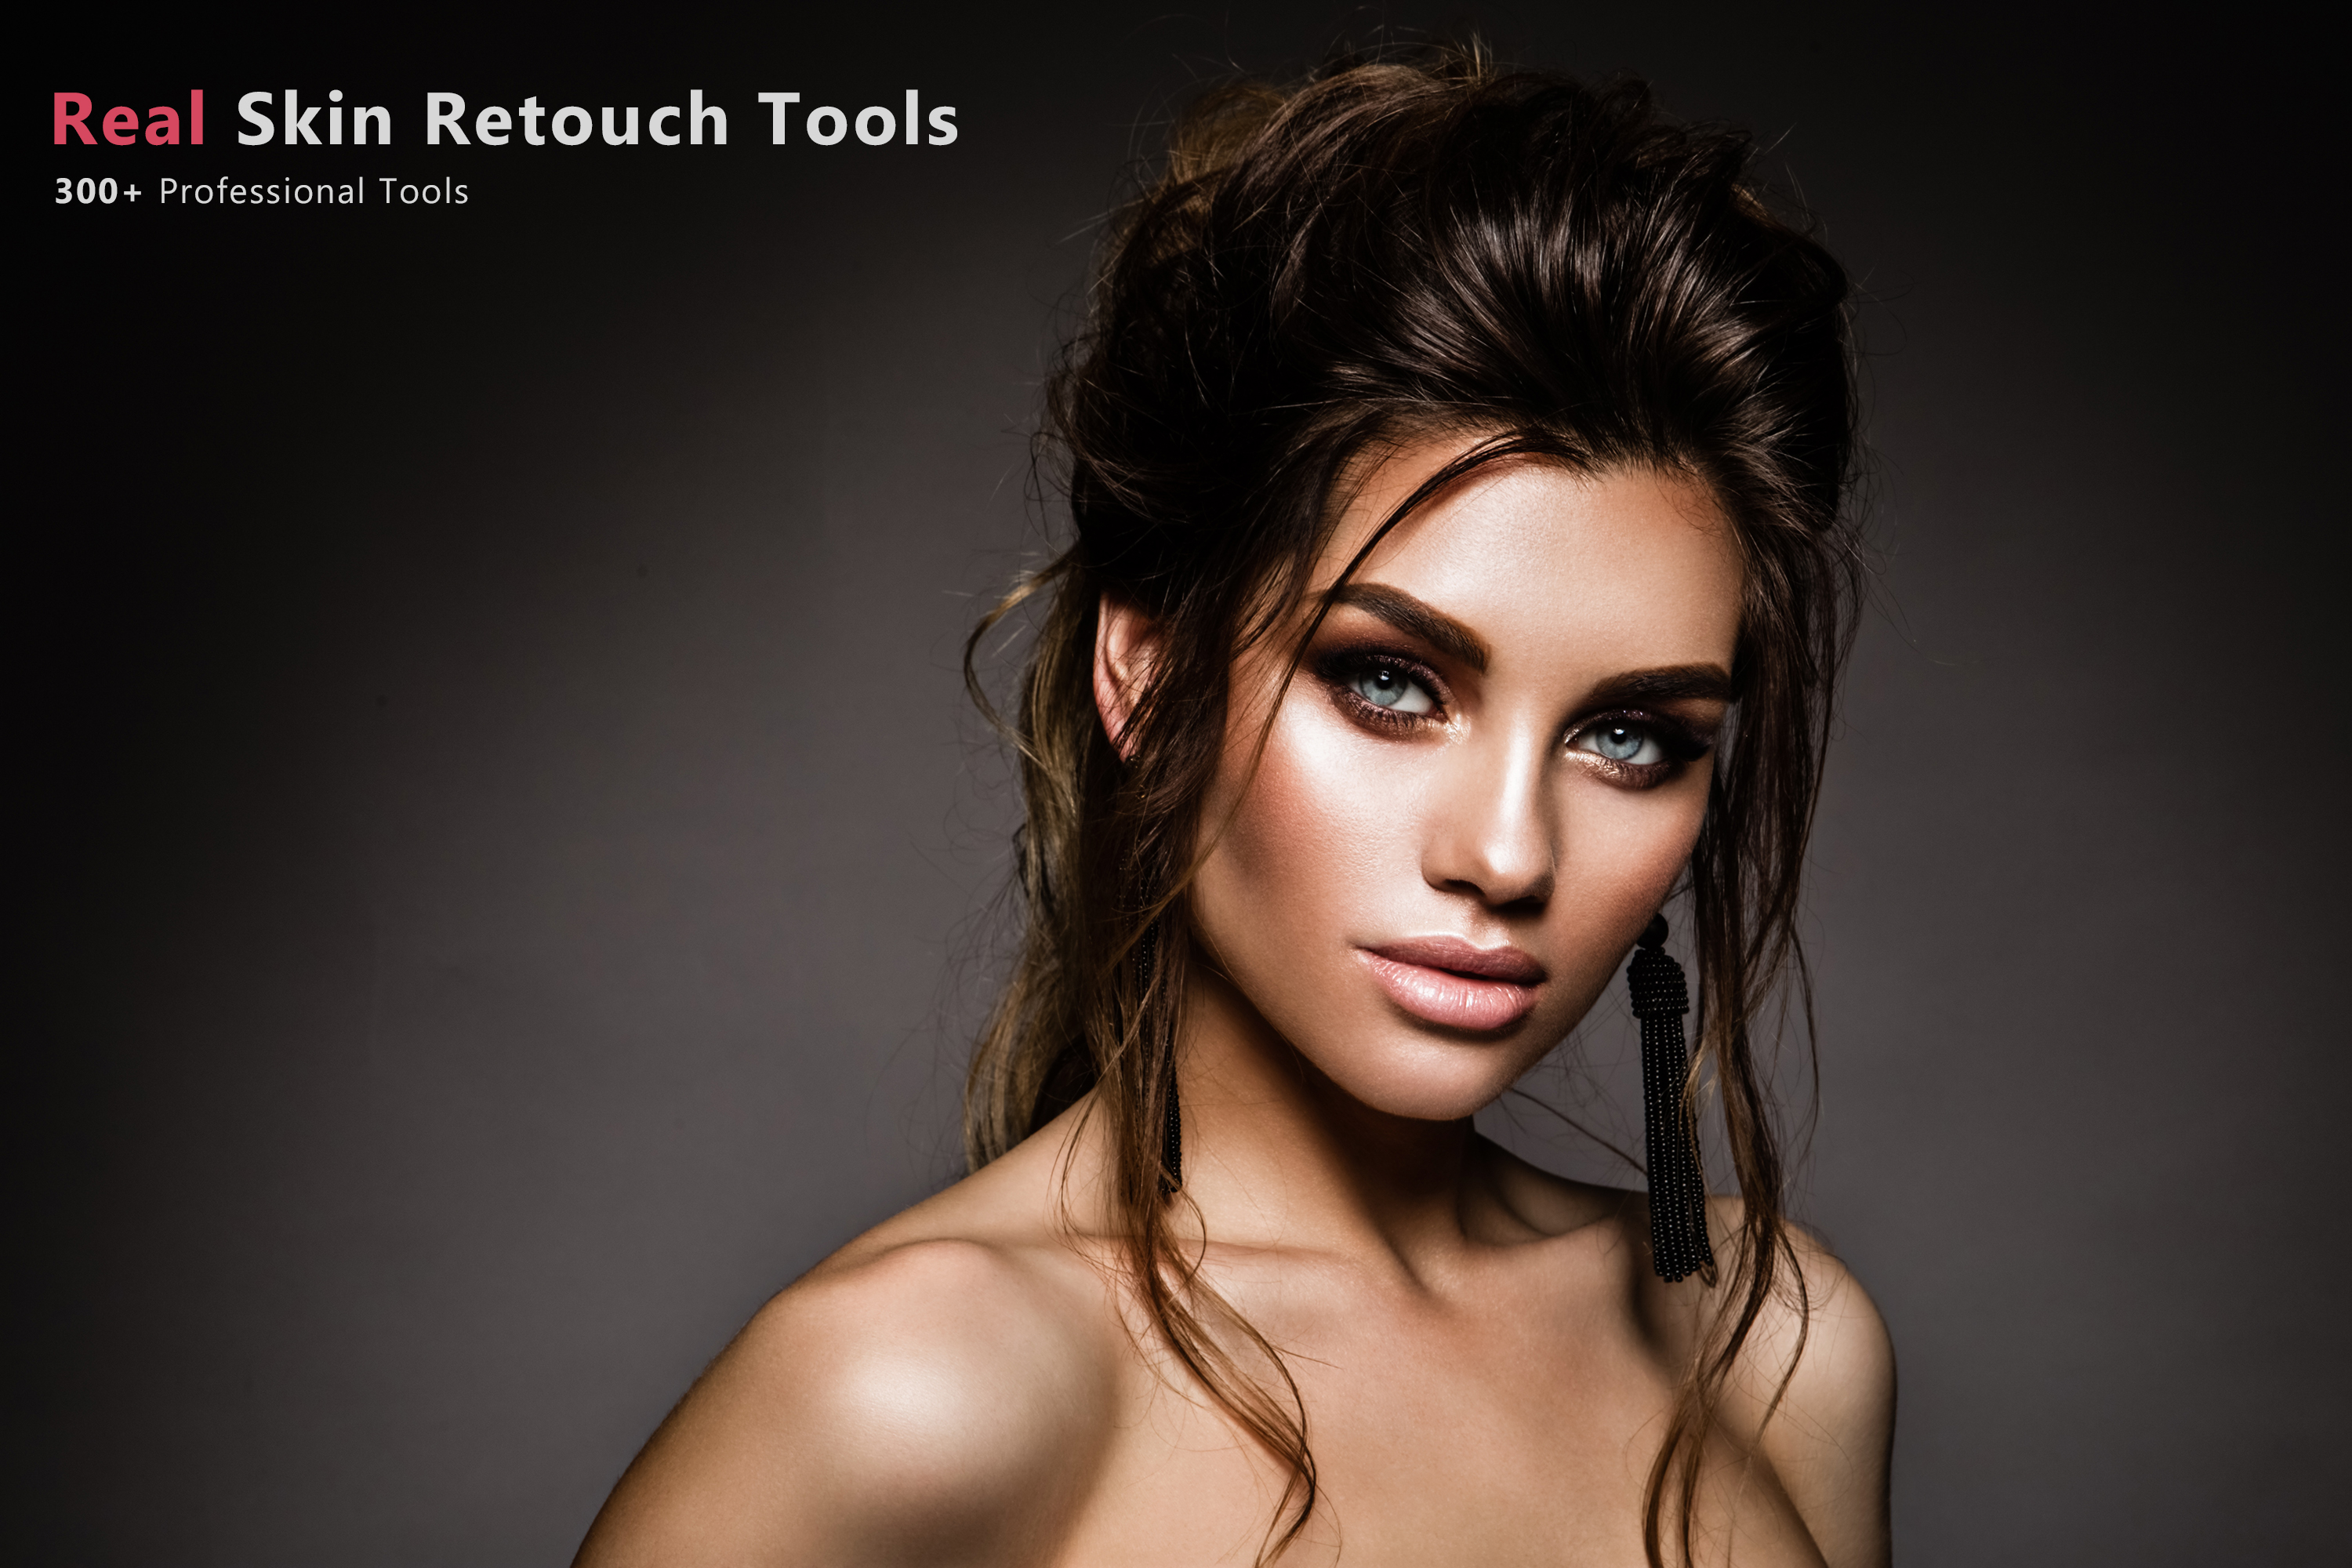 300 Real Skin Retouch Tools example image 1